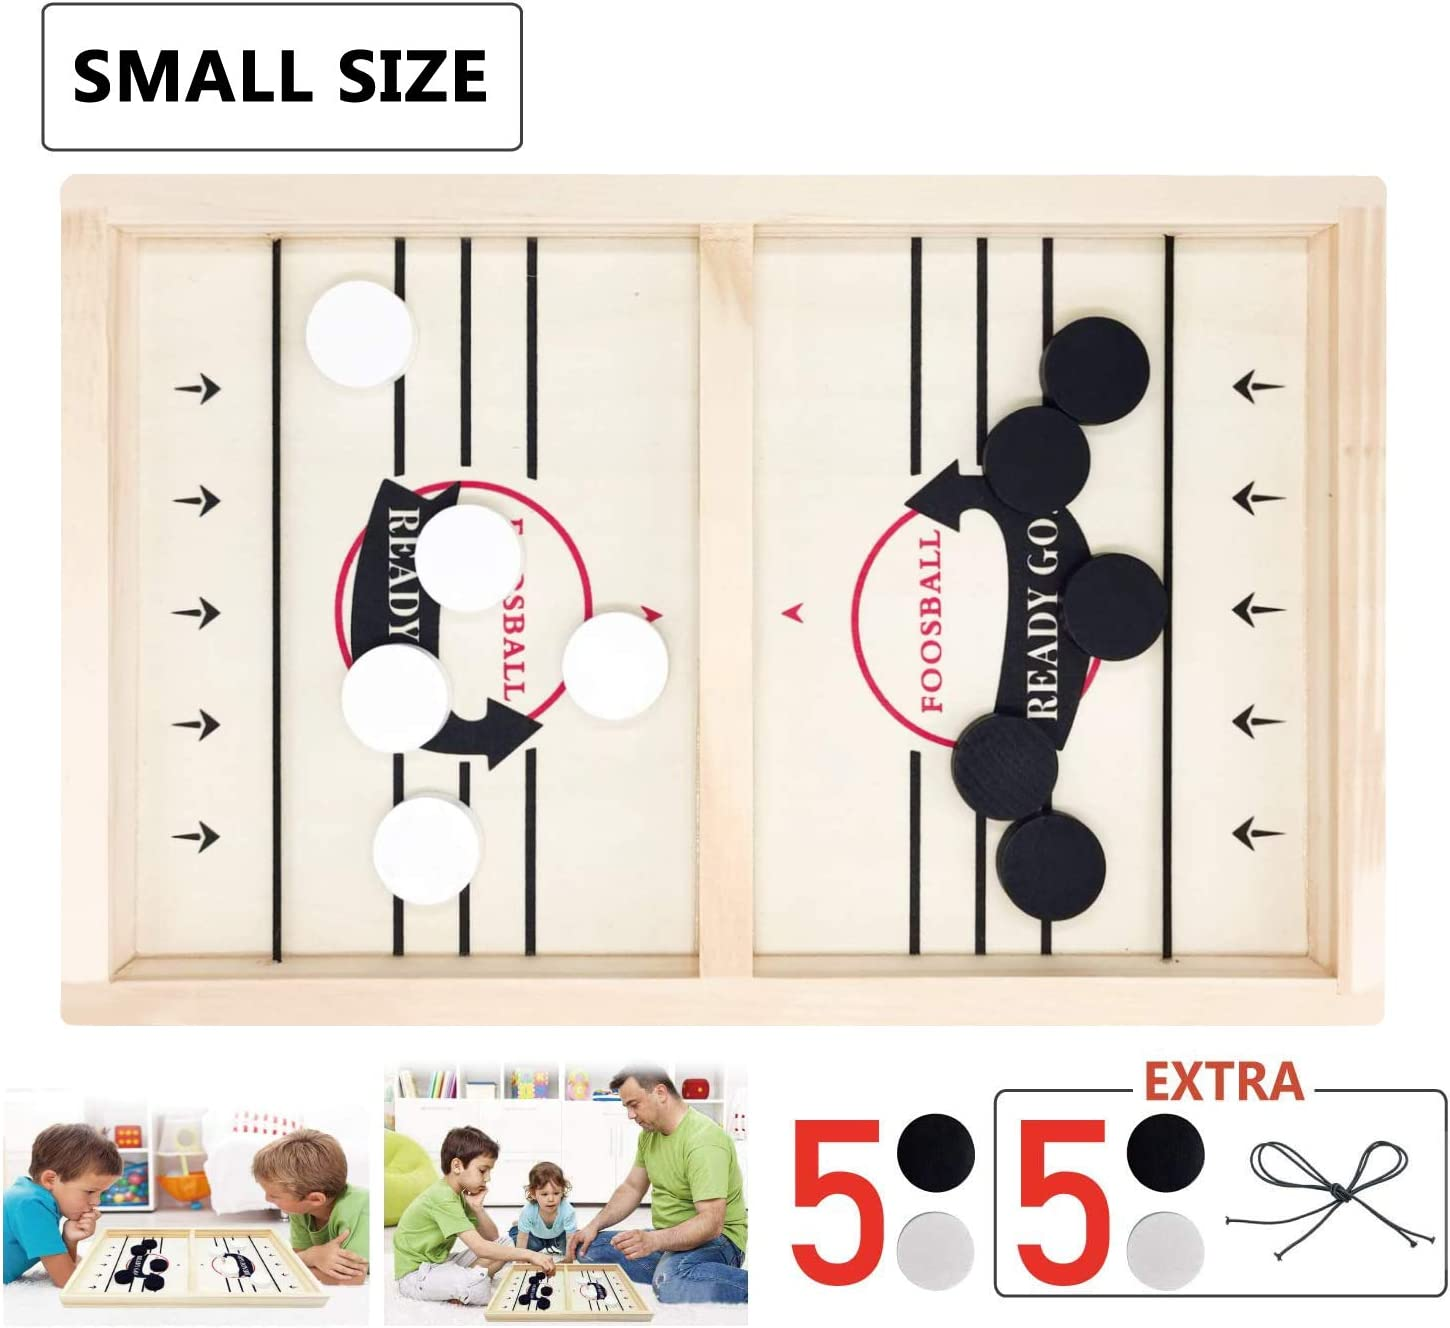 Toydaze Sling Foosball Fast Sling Puck Game with Extra 10 Pucks & 2 Slingshots for Spare Use, Portable Slingpuck Board Game for Child, Foosball Slingshot Outdoor Camping Board Games for Family